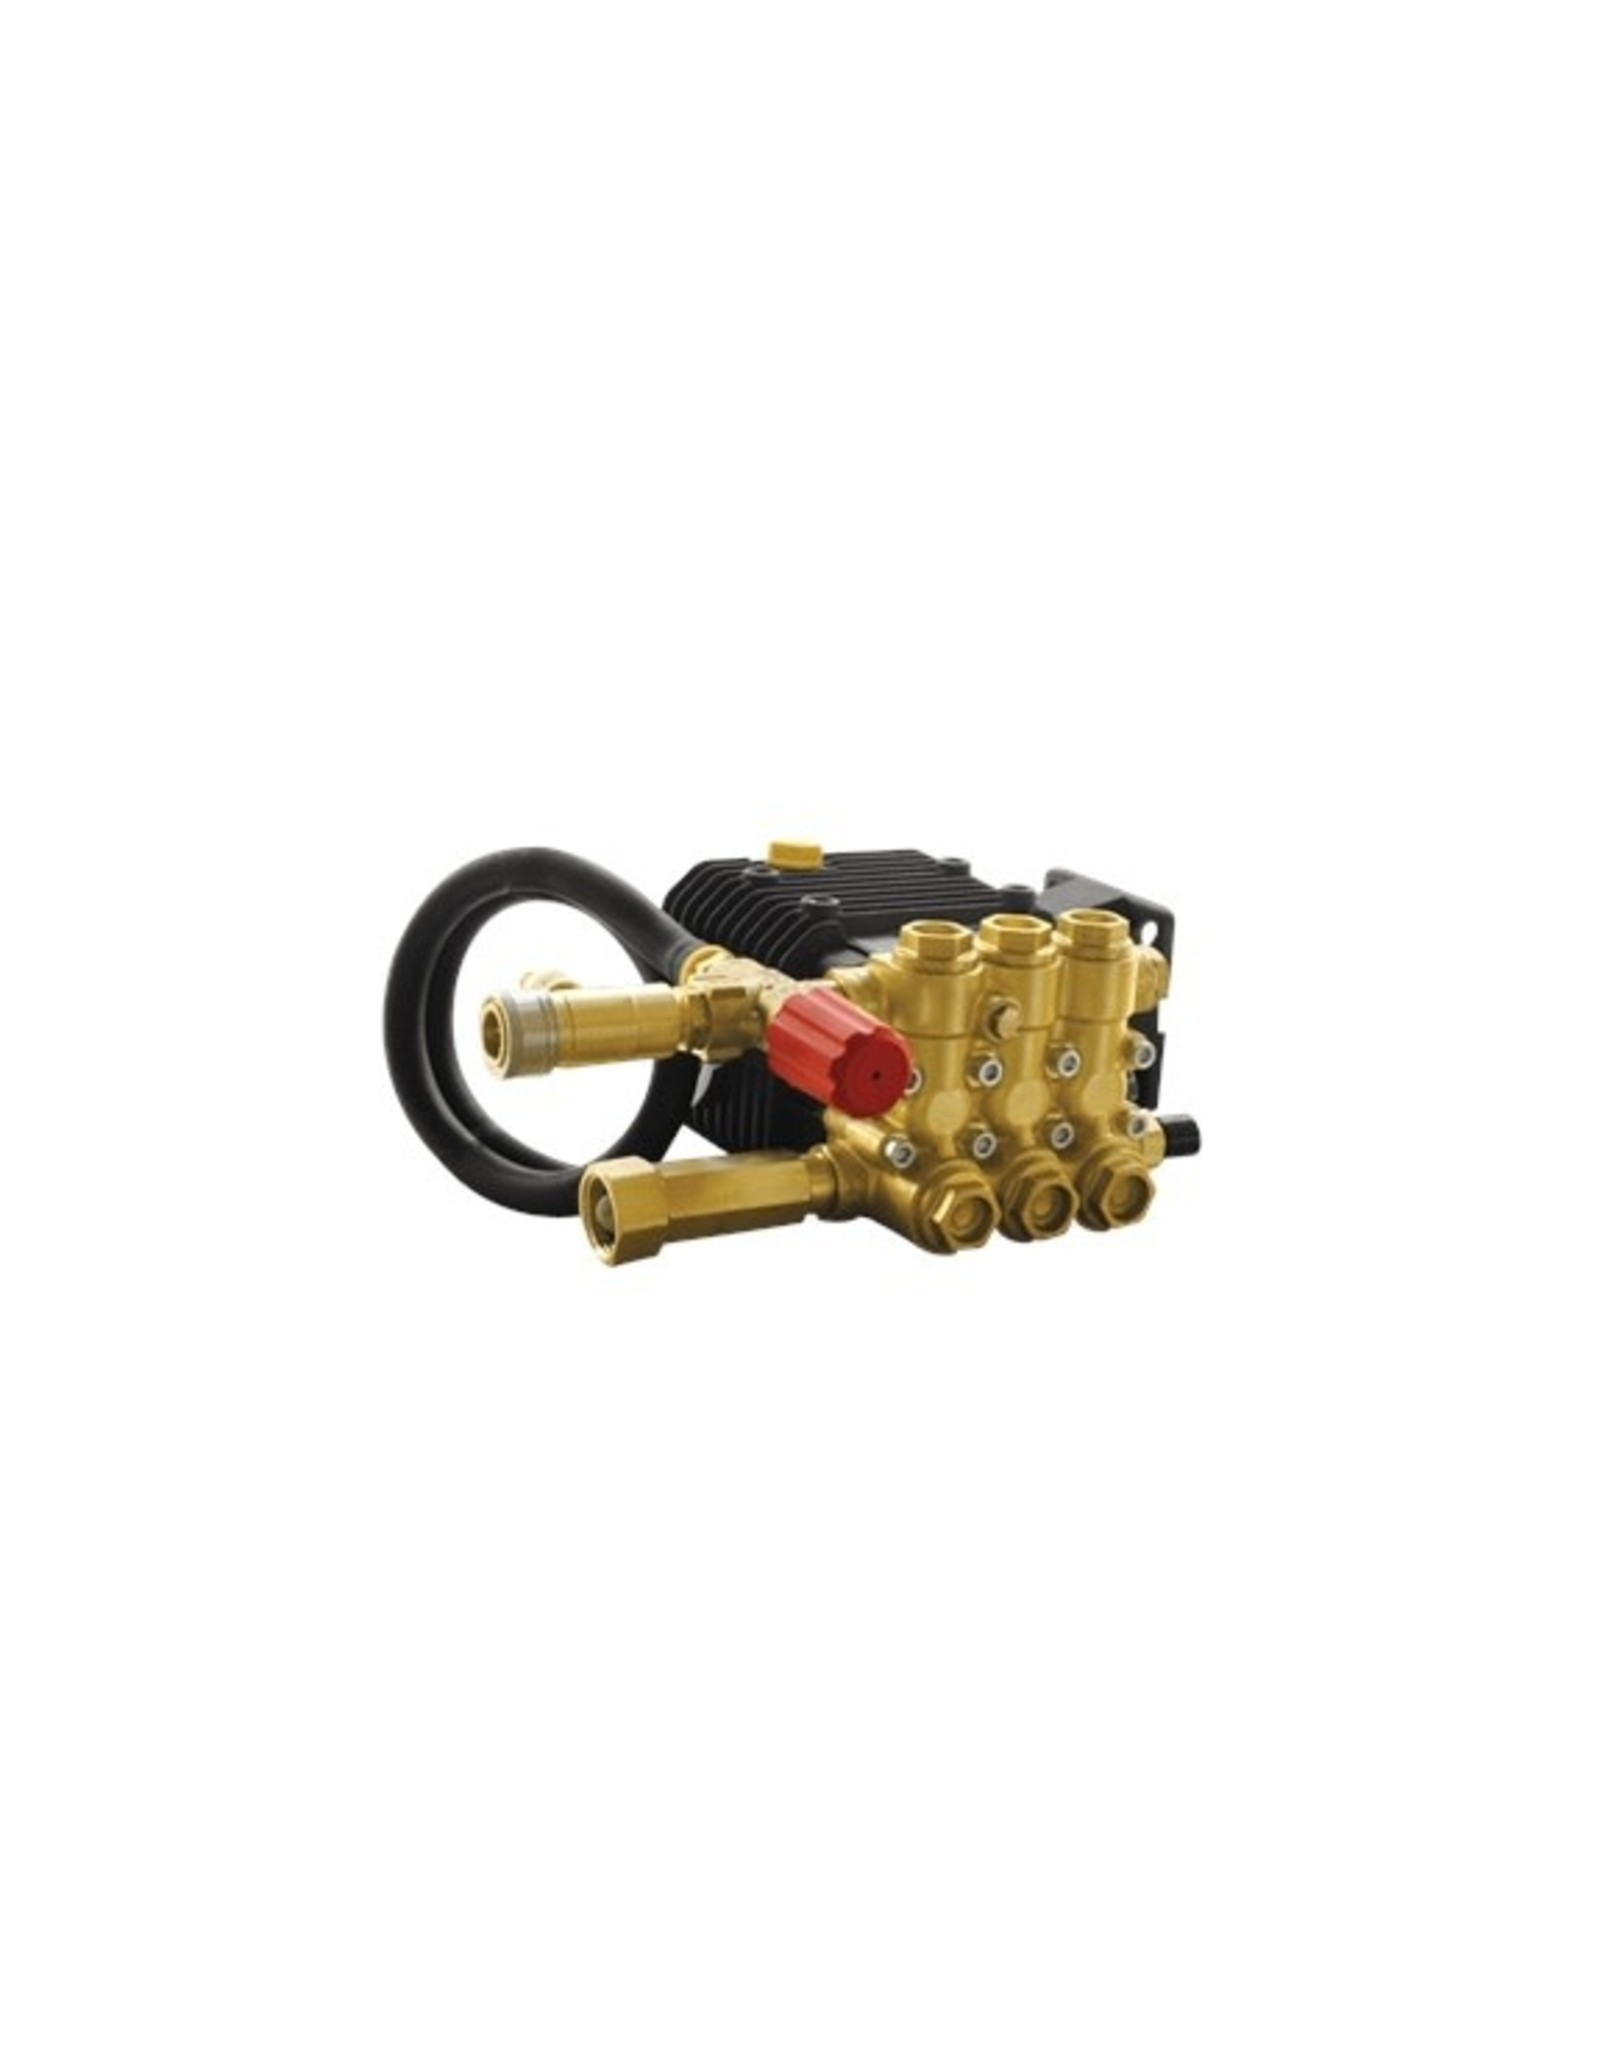 Comet 85.149.004B Comet Pump 3/4' Shaft